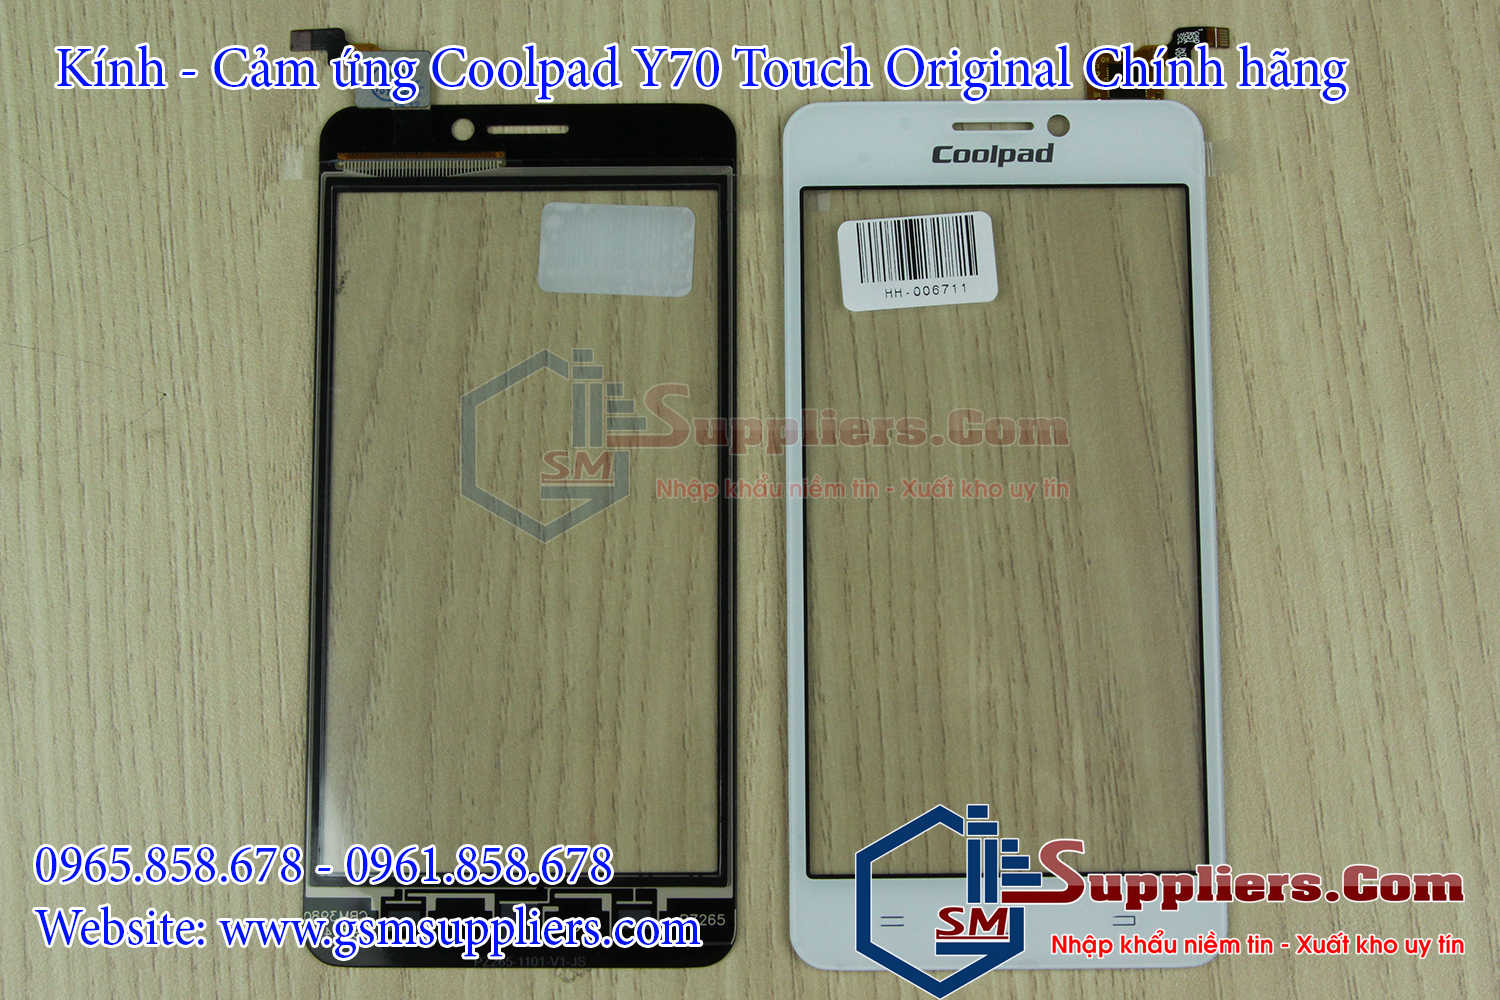 cam ung coolpad y70 hang chinh hang gia re tai ha noi 7